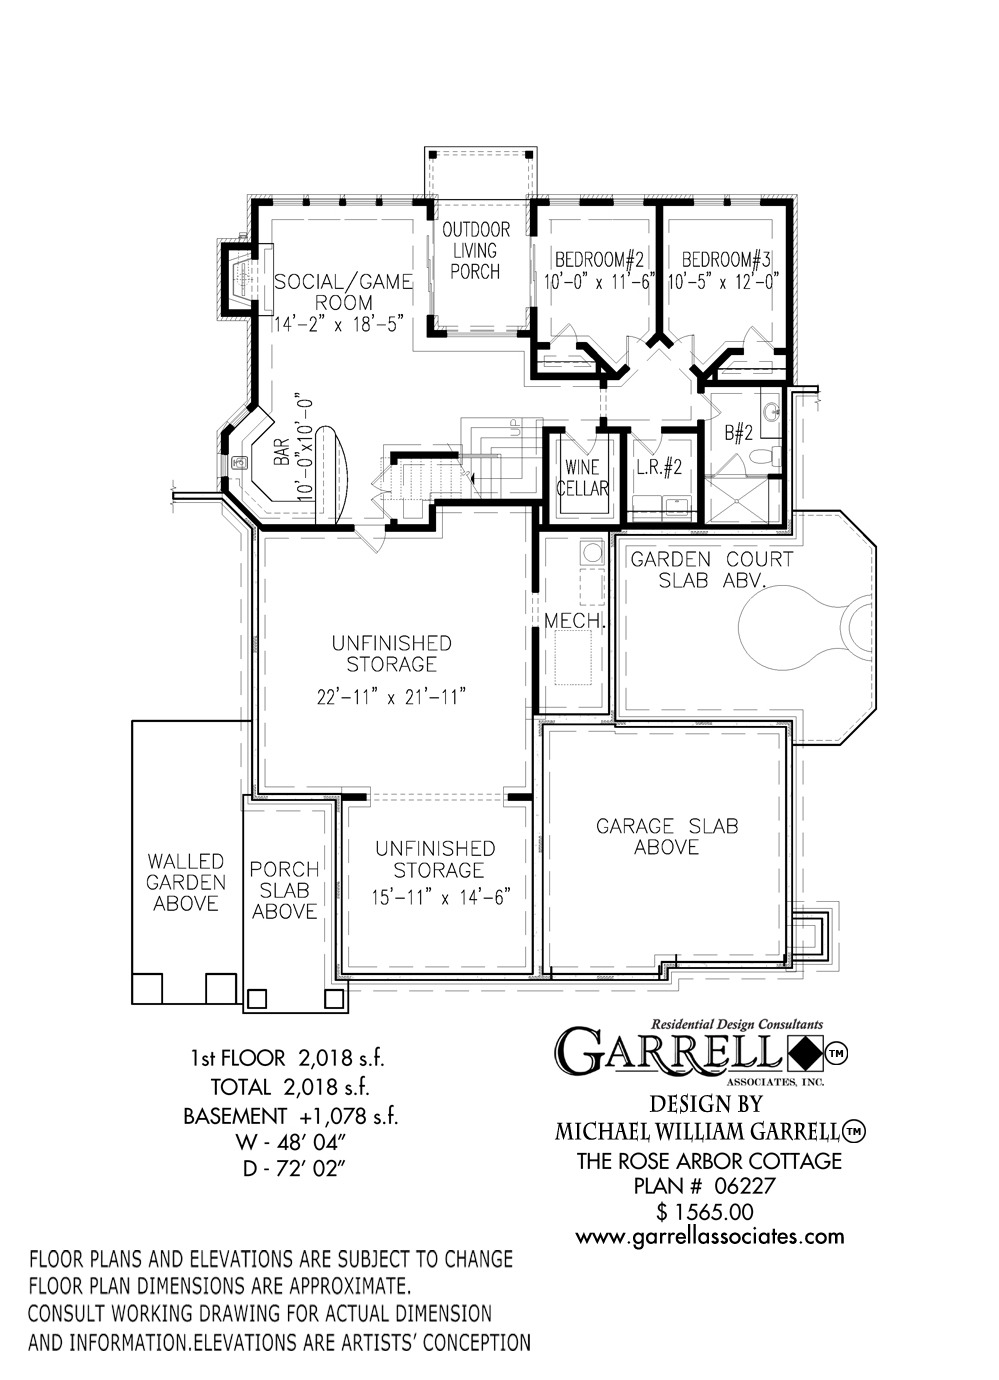 Rose Arbor Cottage House Plan 2nd floor plan